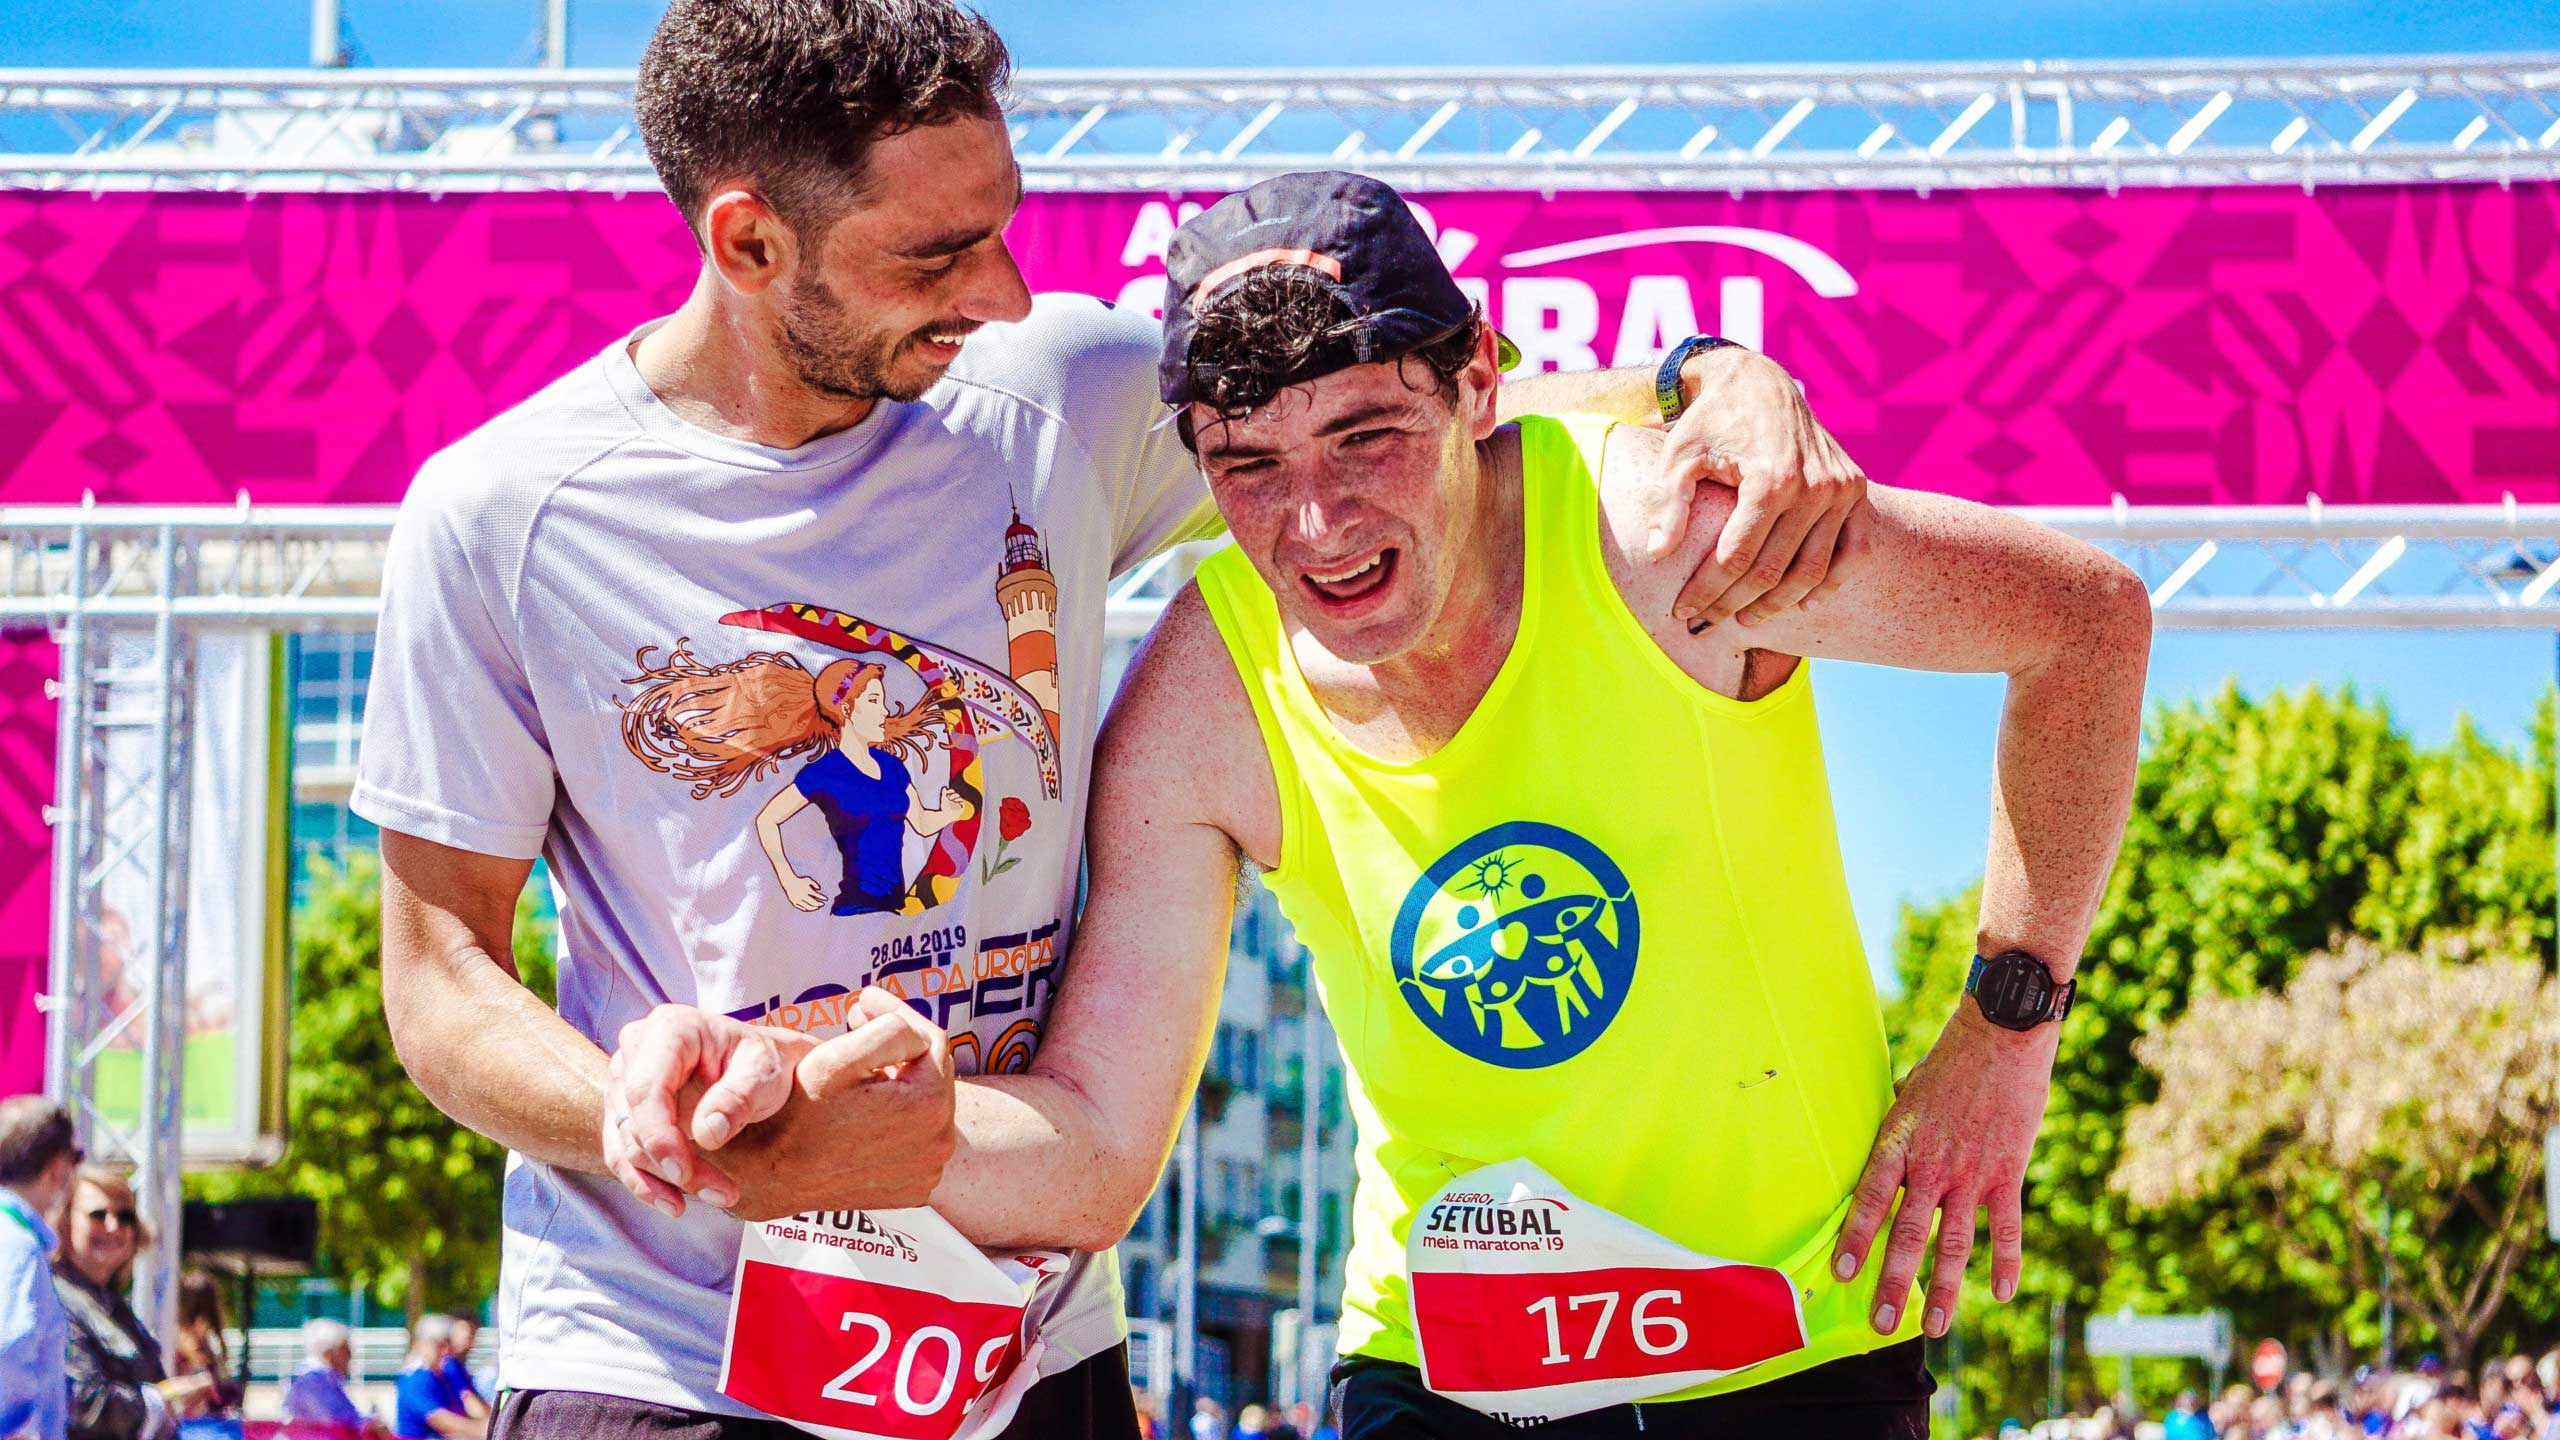 Two men after finishing a running race